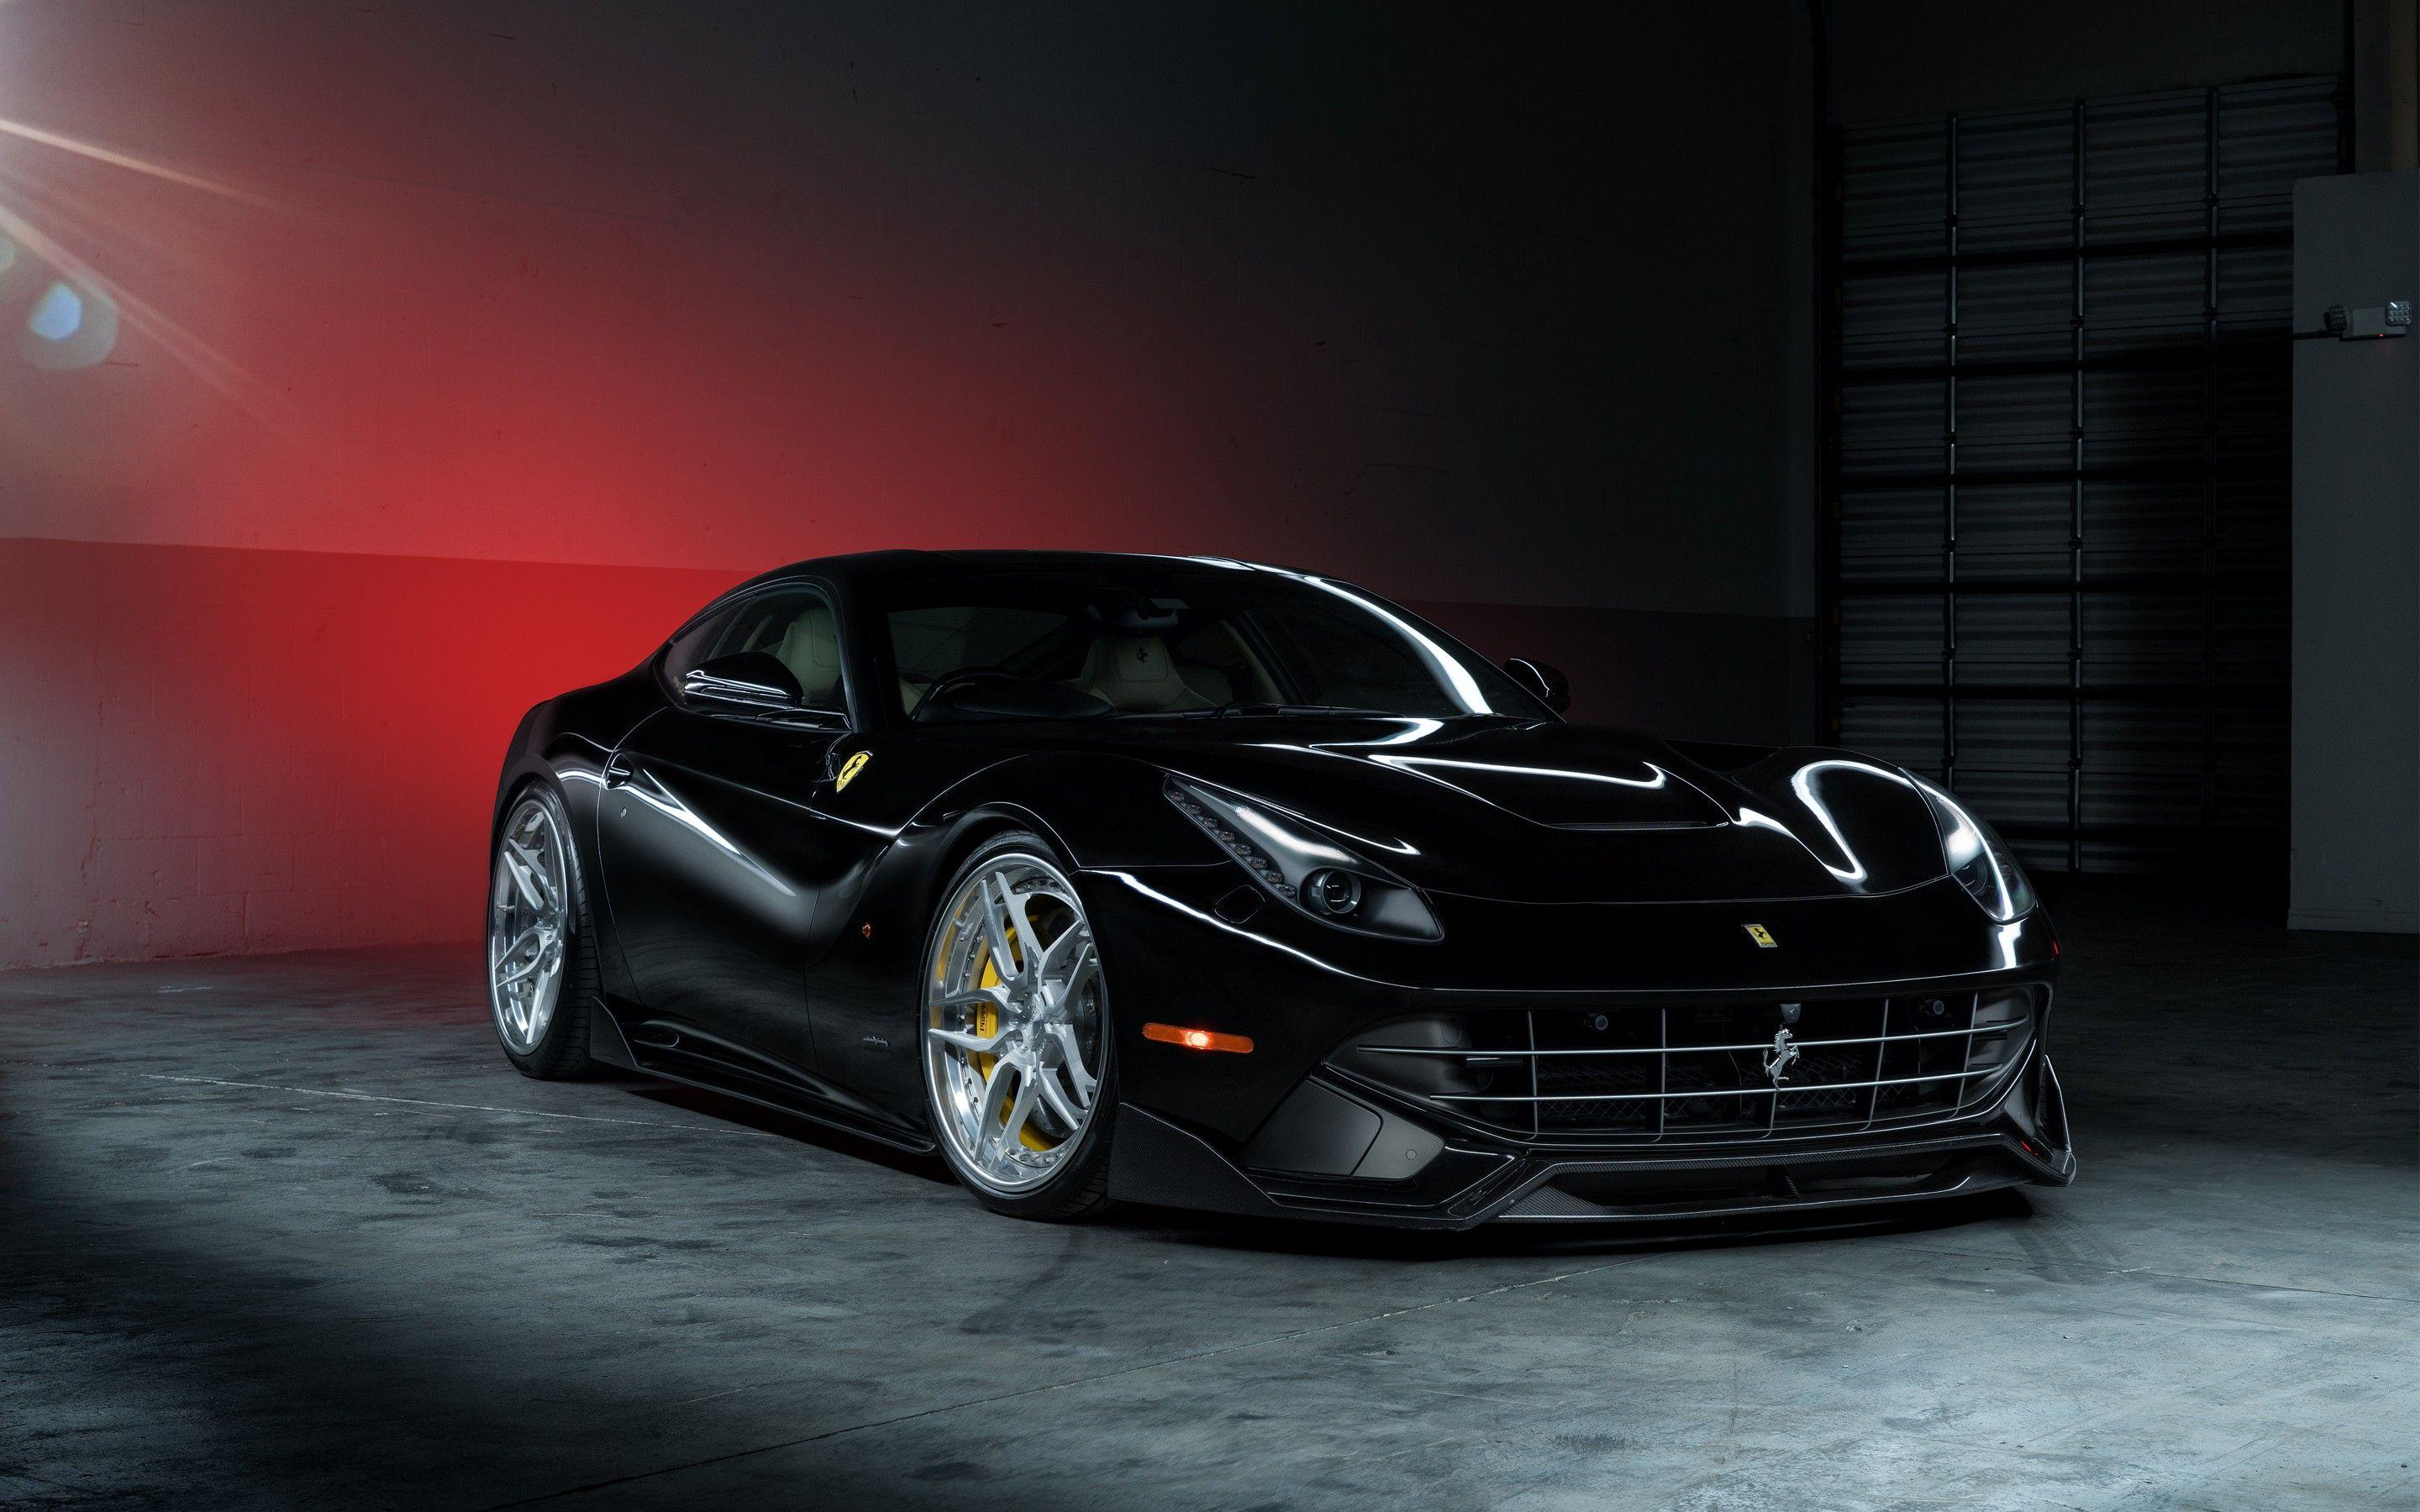 Ferrari F12 Berlinetta, HD Cars, 4k Wallpapers, Images, Backgrounds ...